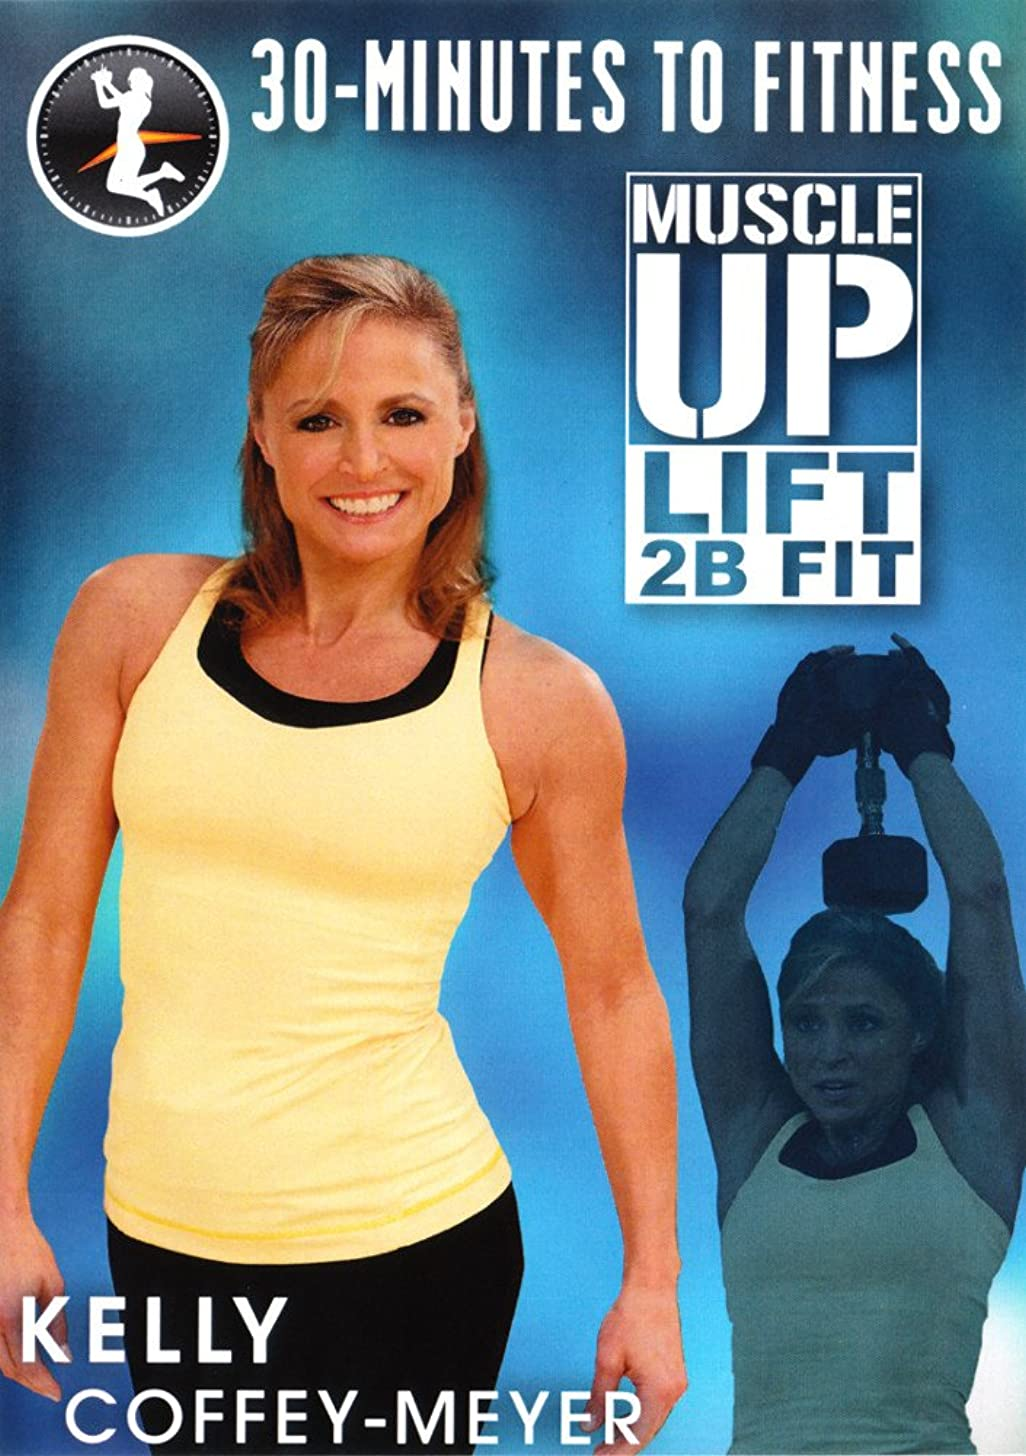 30 Minutes to Fitness: Muscle Up Lift 2B Fit with Kelly Coffey-Meyer